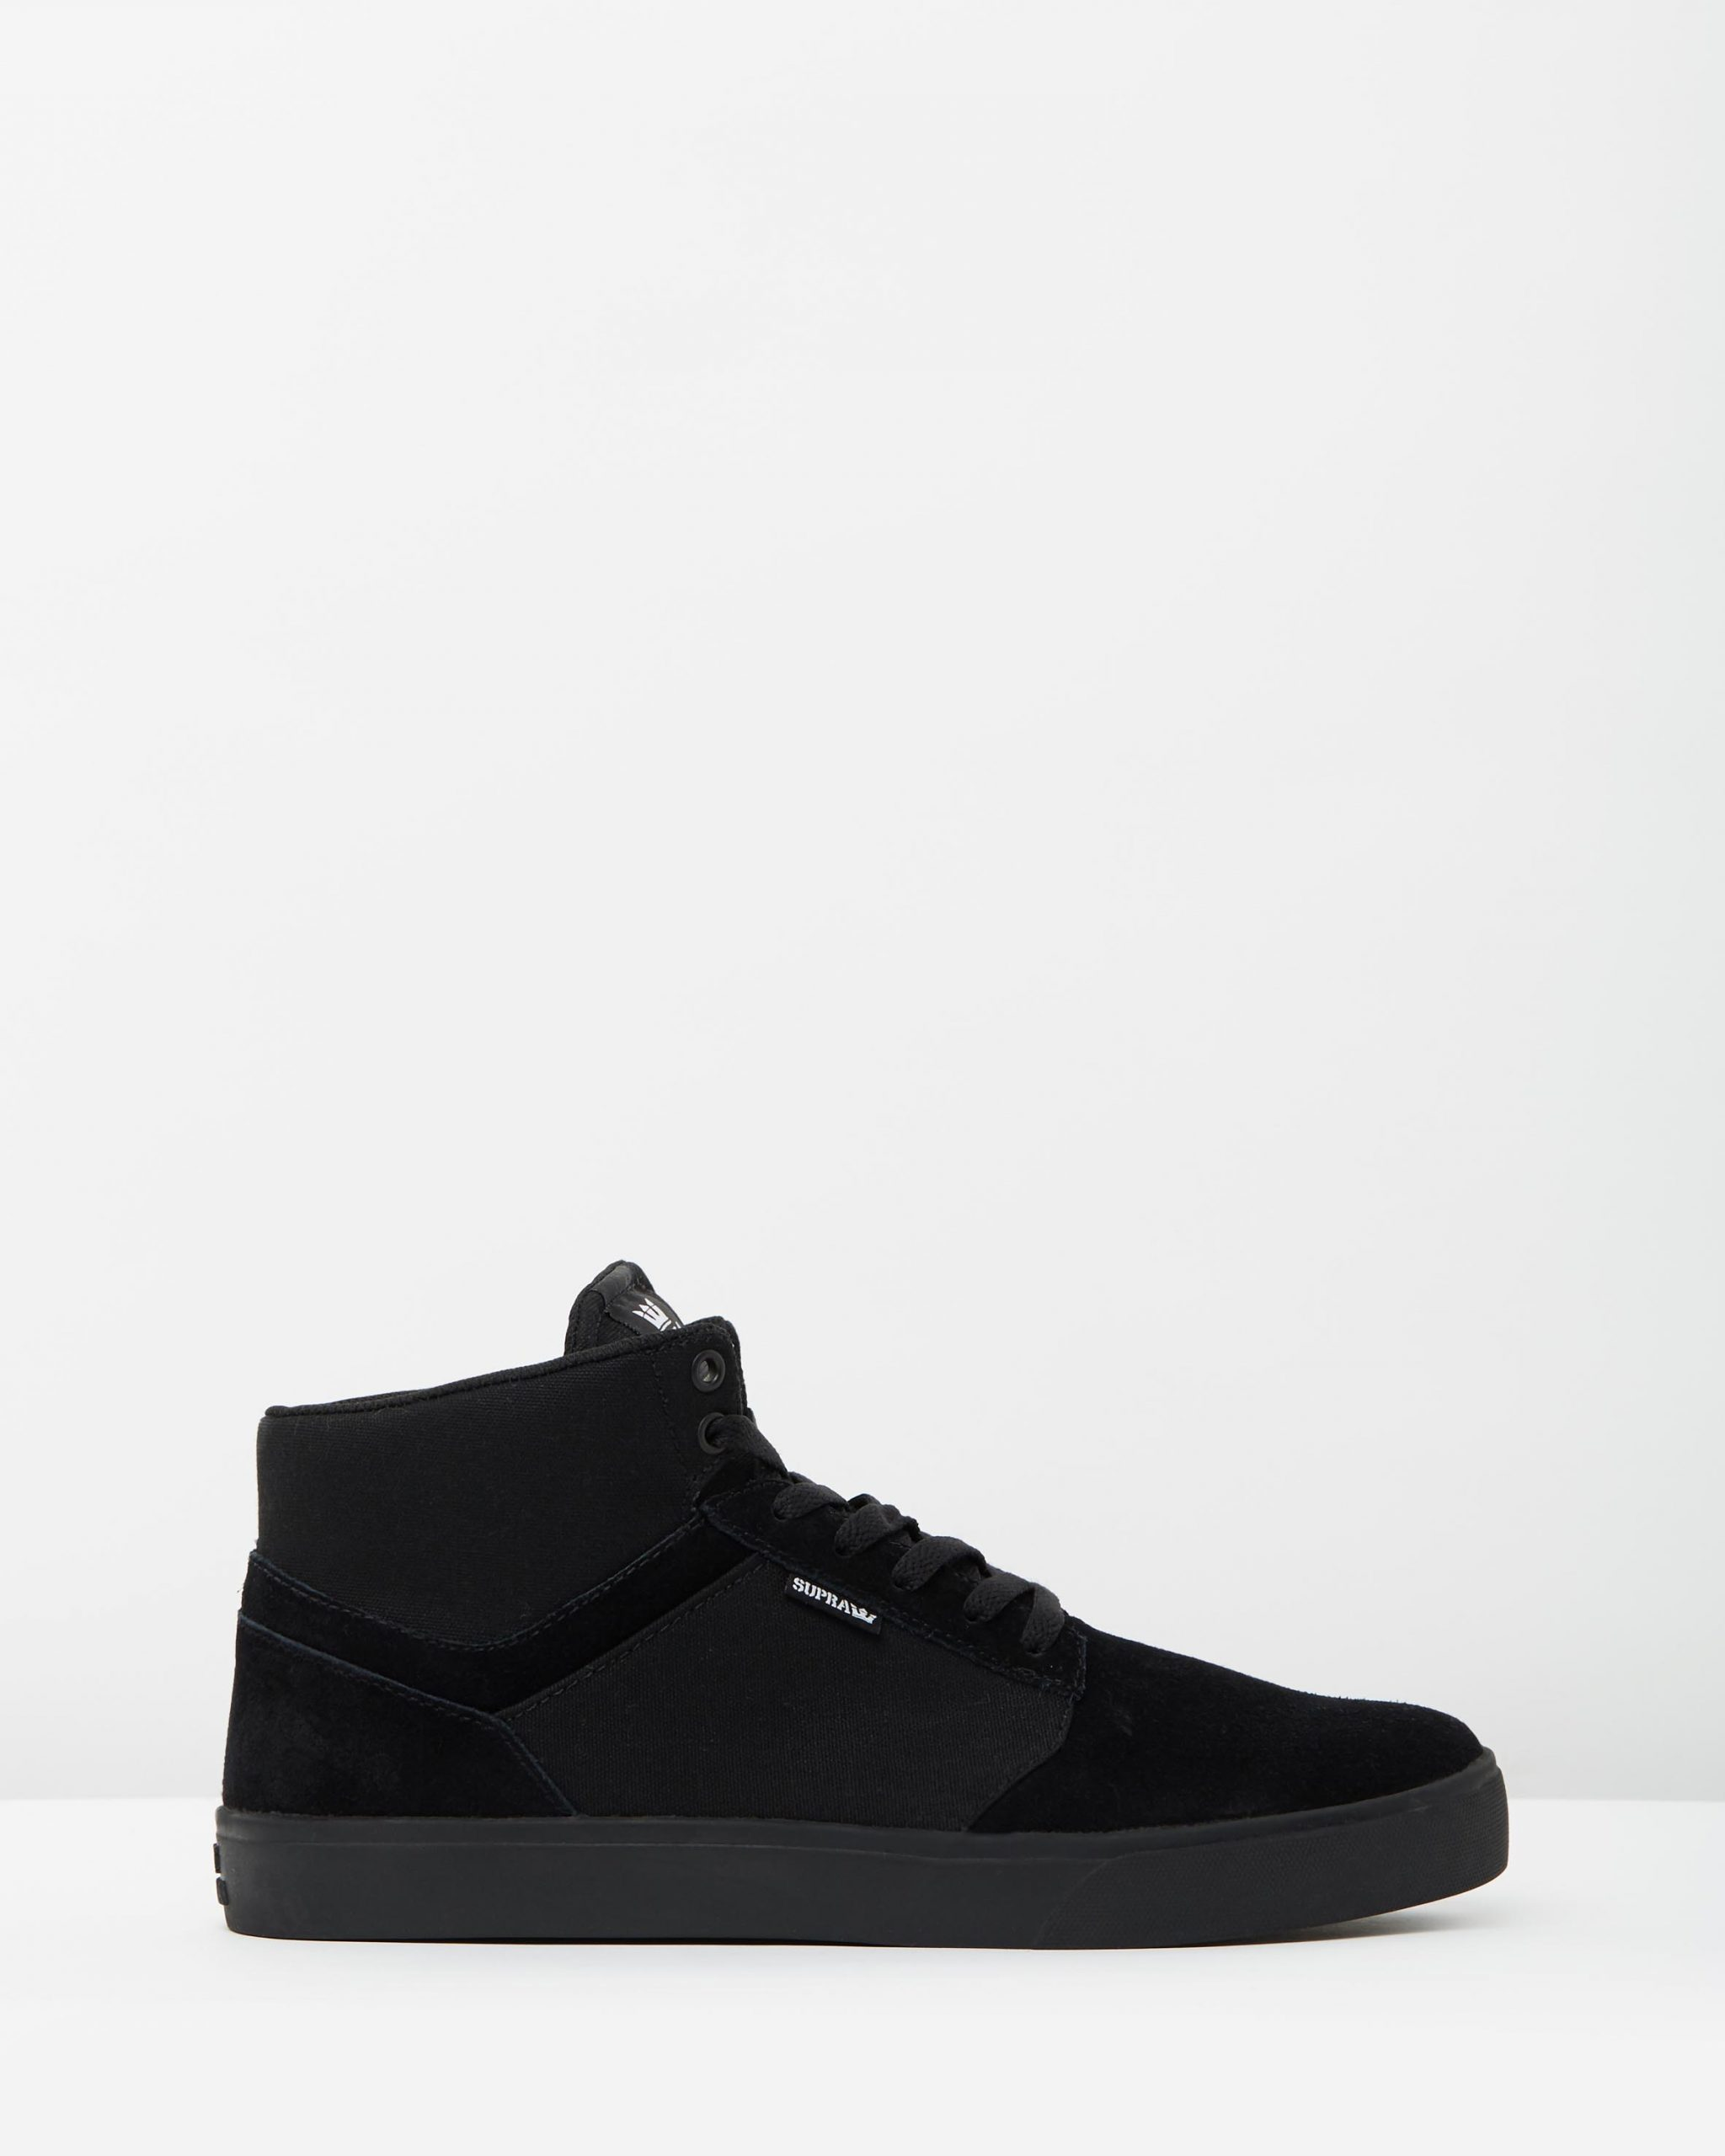 Supra Yorek High Black